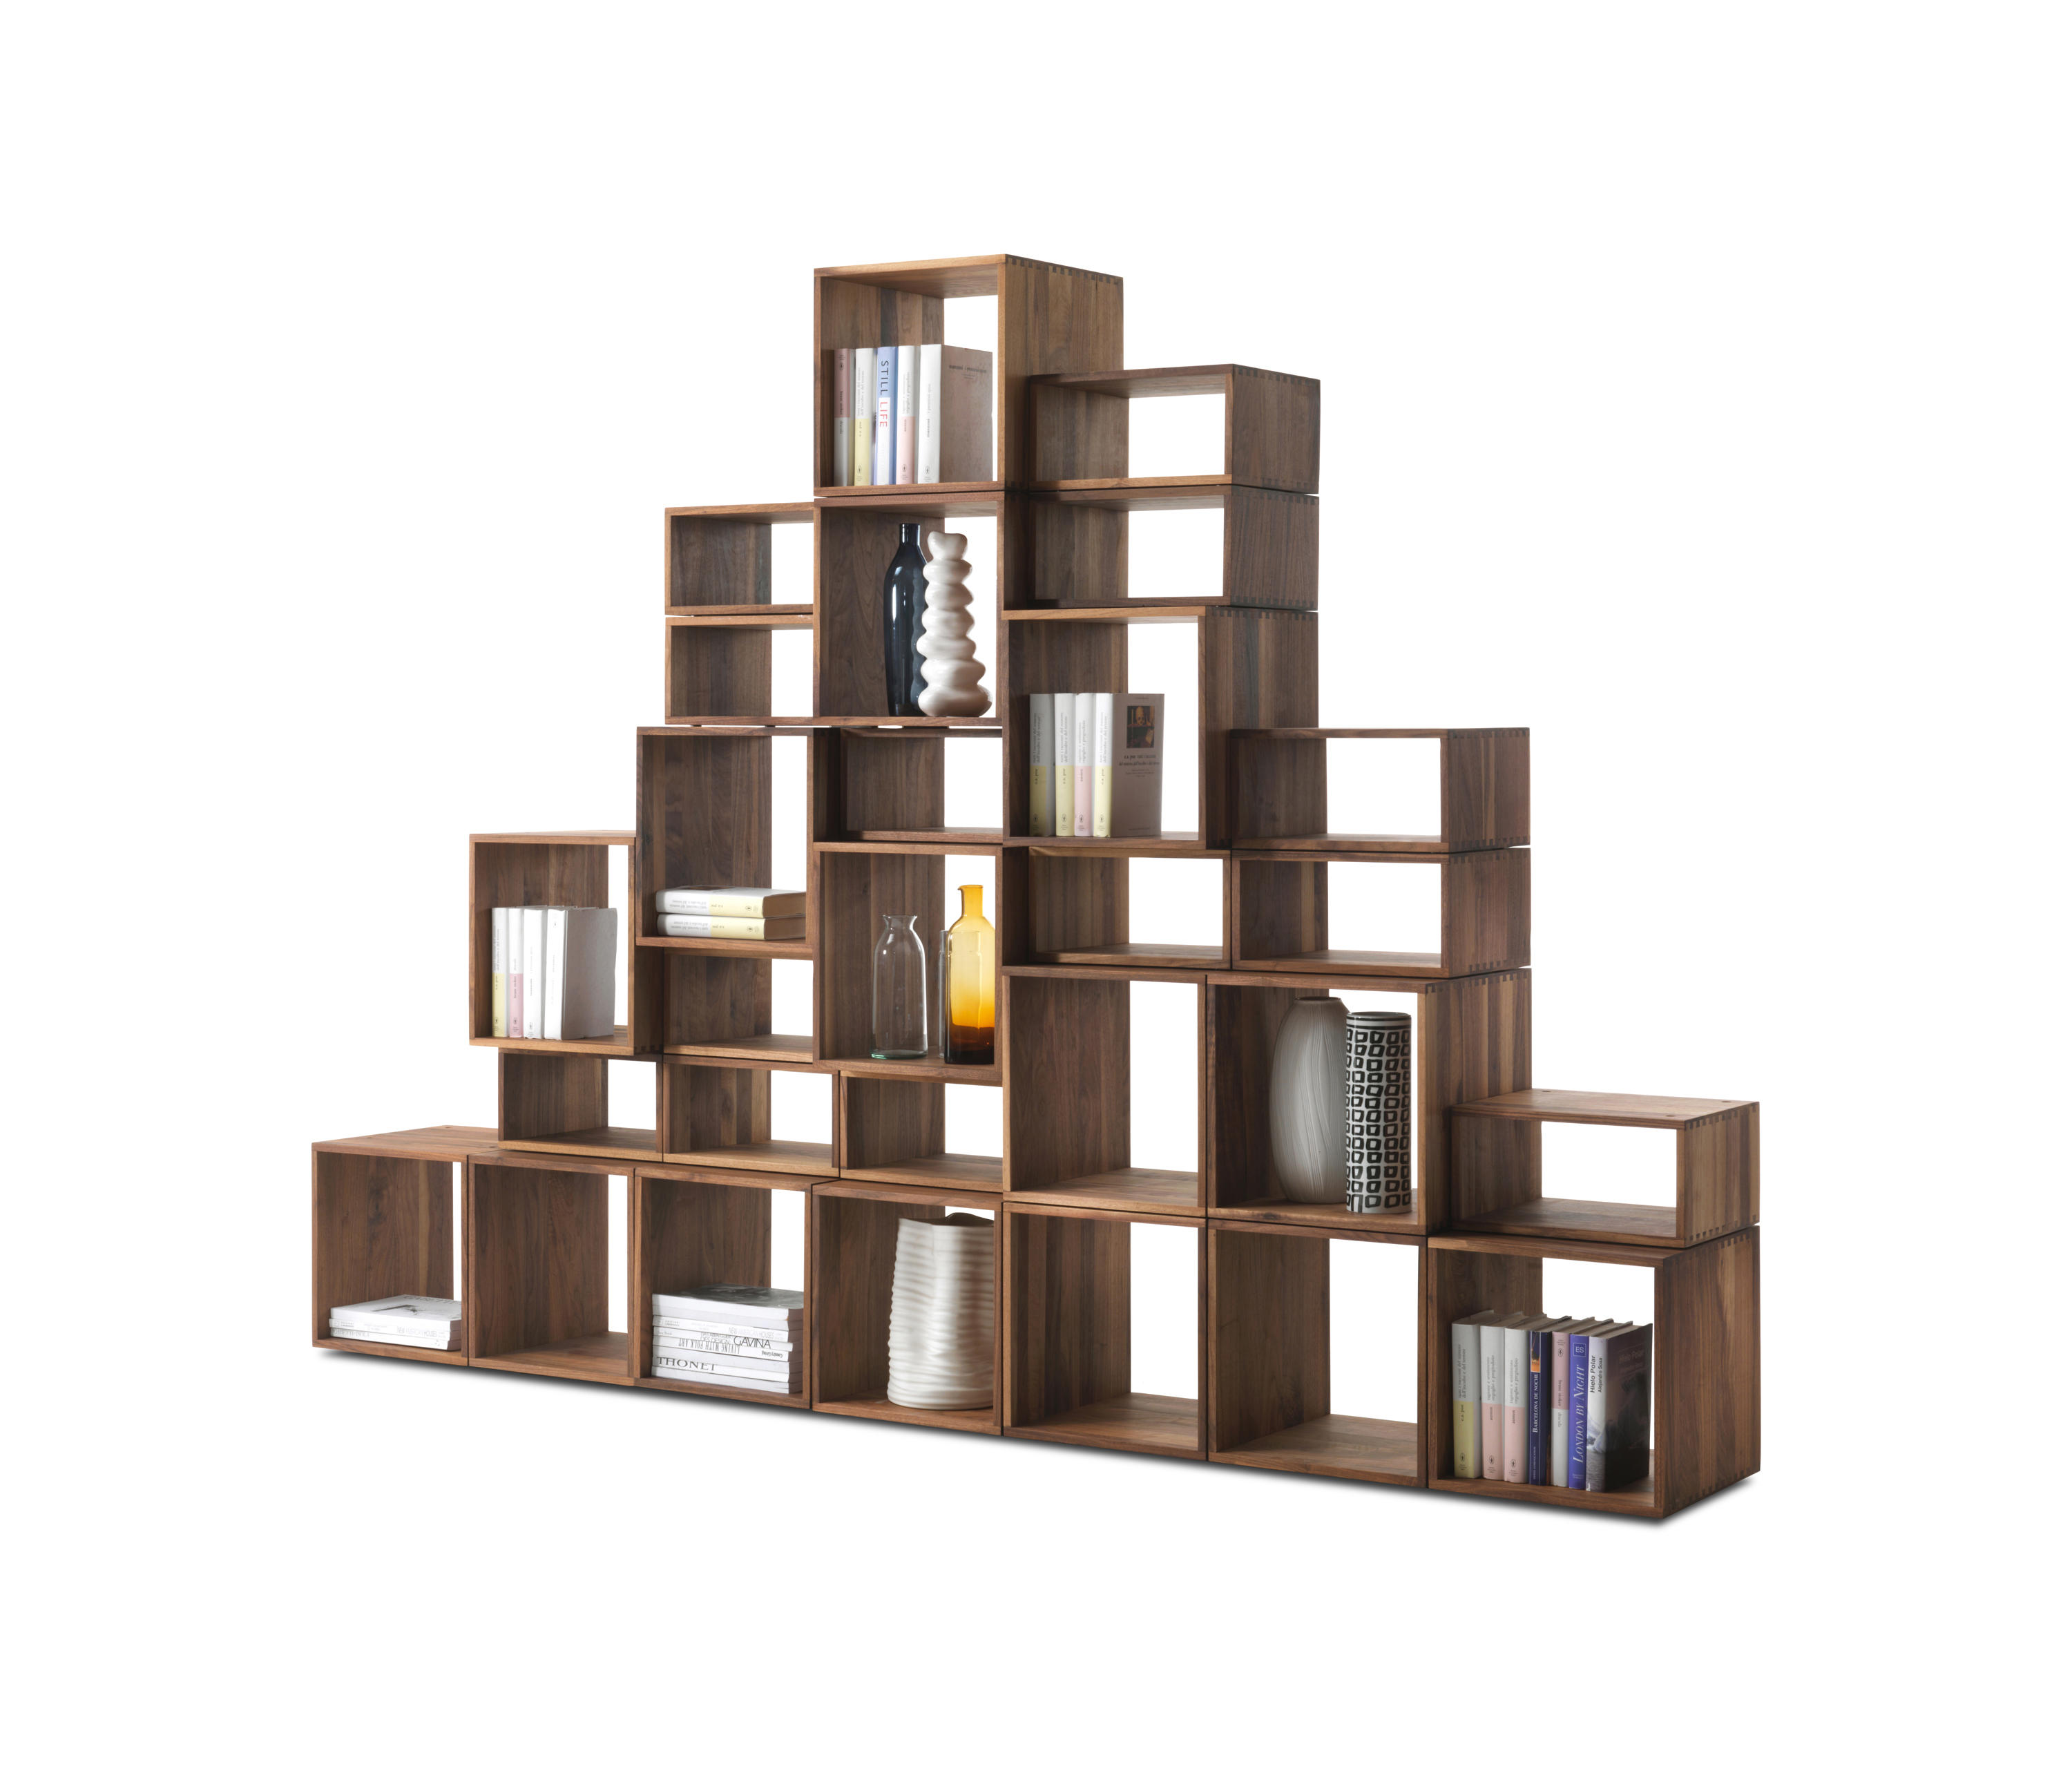 in barrister gallery of ideas from material bookcase decoration photos wooden within with tile styling cookwithalocal for barristers furniture rotating